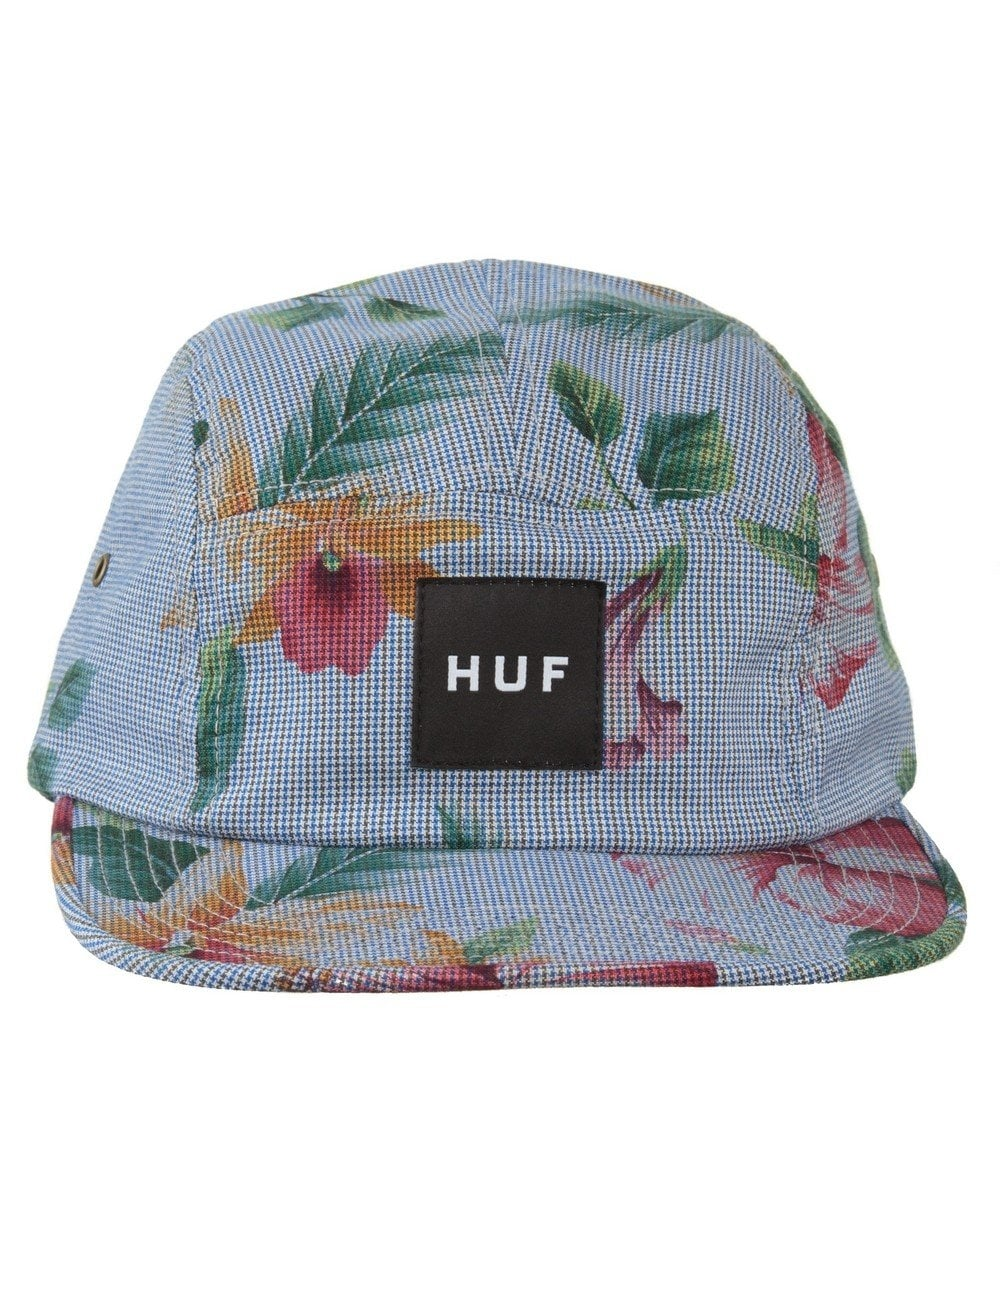 749bf8a020e14 Huf Aloha Aina Volley Hat - Blue - Accessories from Fat Buddha Store UK